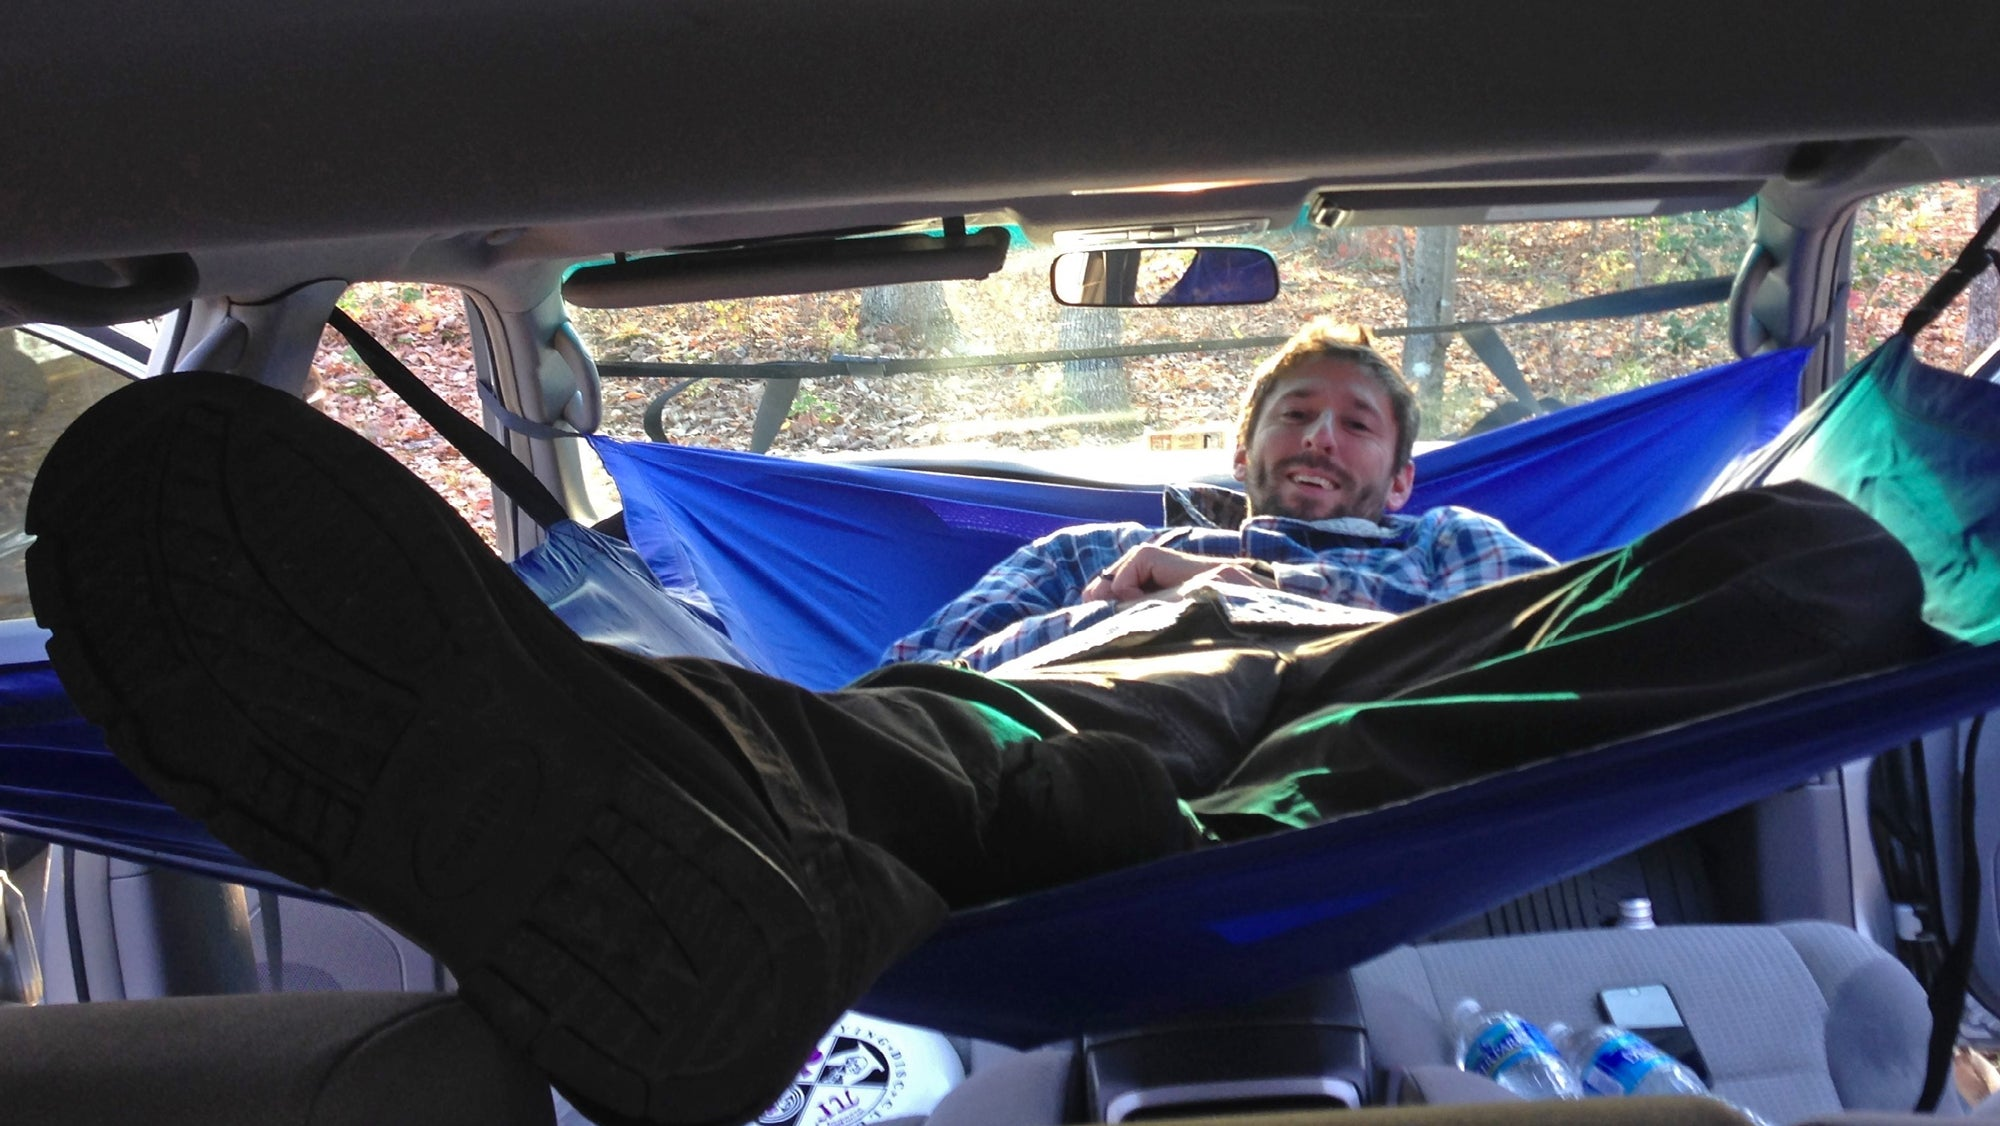 A Hammock For Your Car Gives You A Cheap Home If The Apocalypse Ever Comes